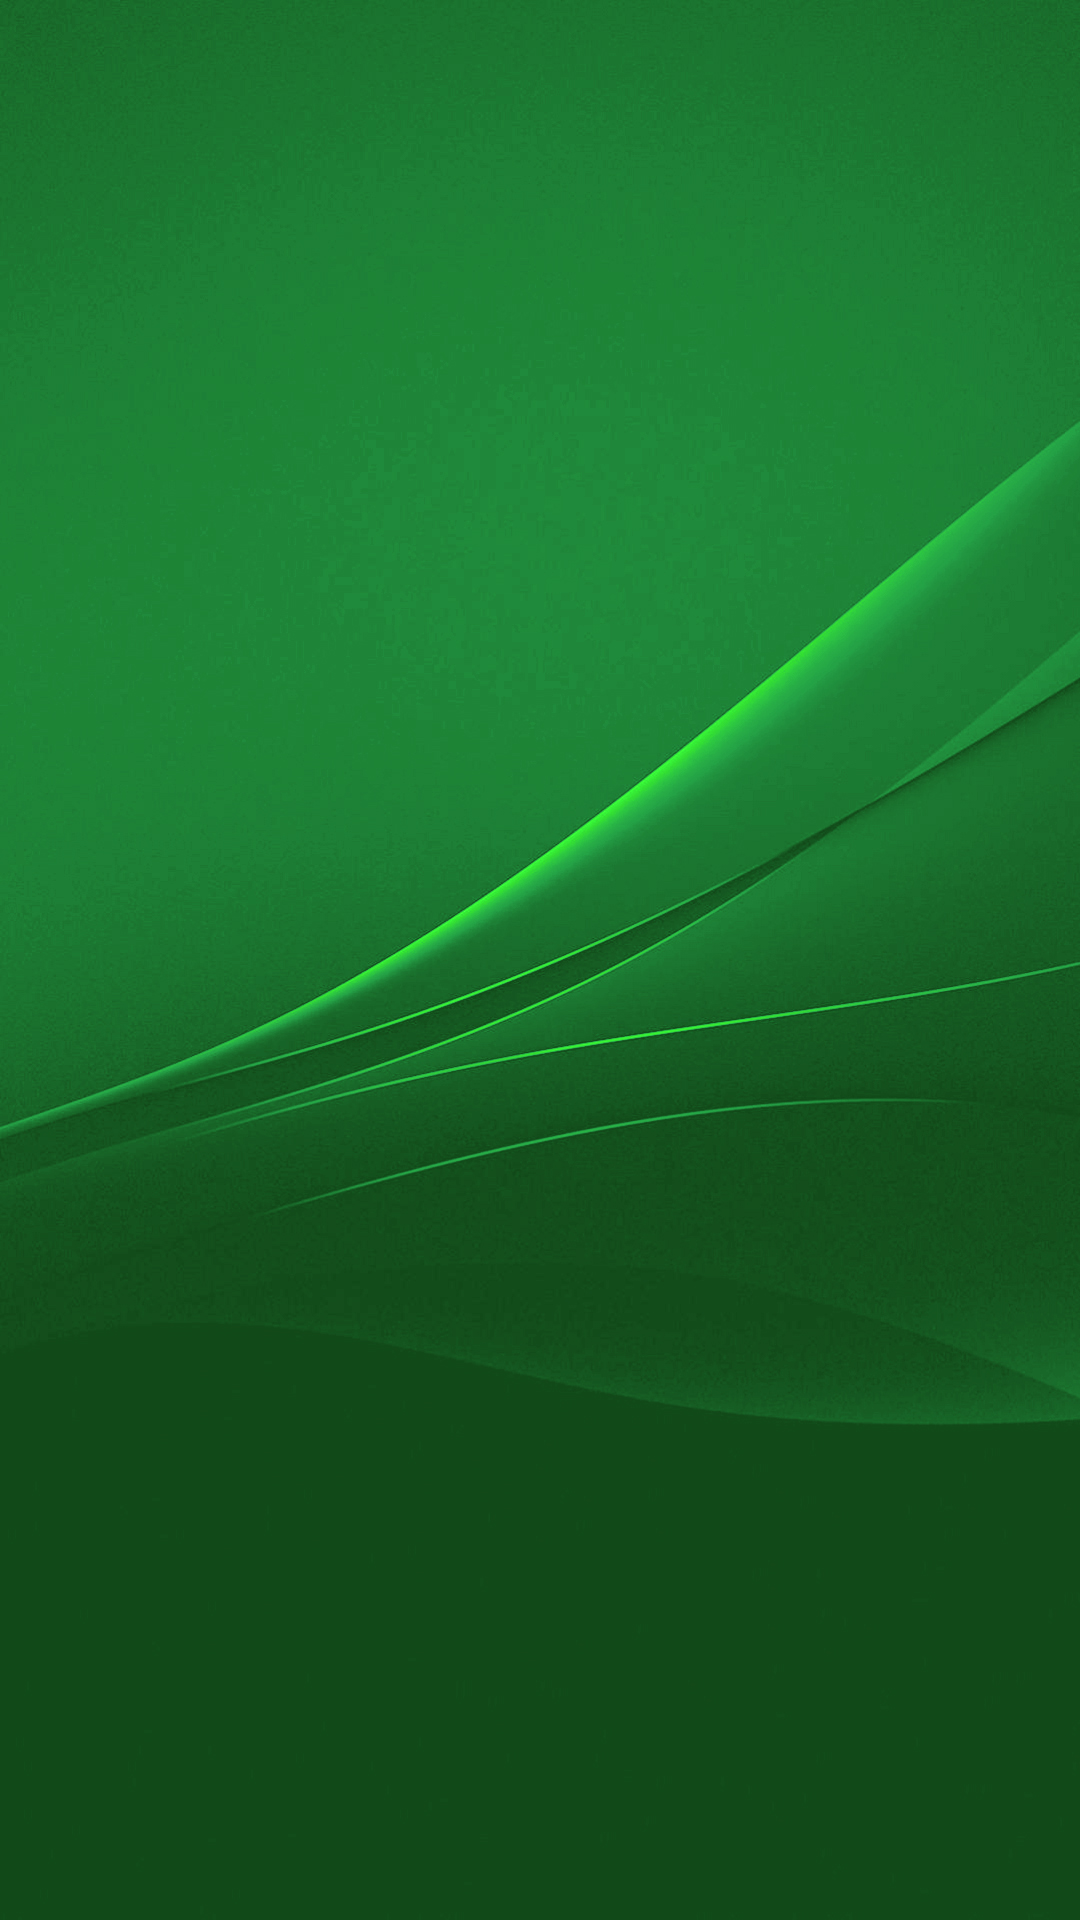 Green Xperia Lollipop Experience Flow Wallpaper — Gizmo ...